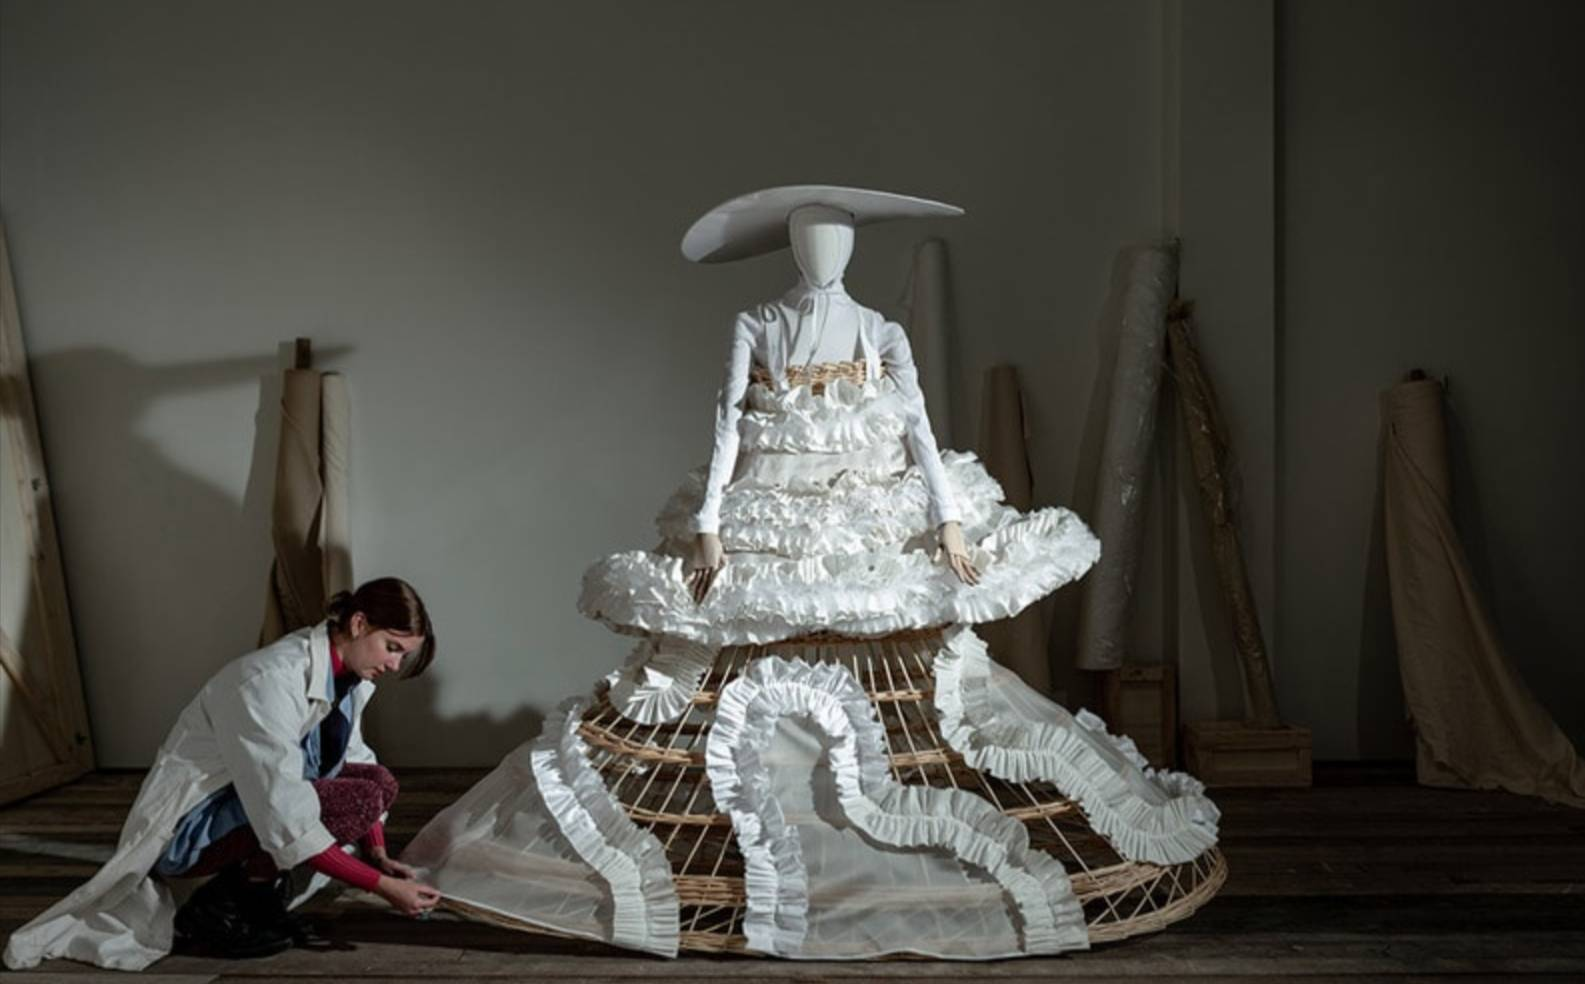 'In the making': an exhibition exploring fashion behind the windows of De Bijenkorf